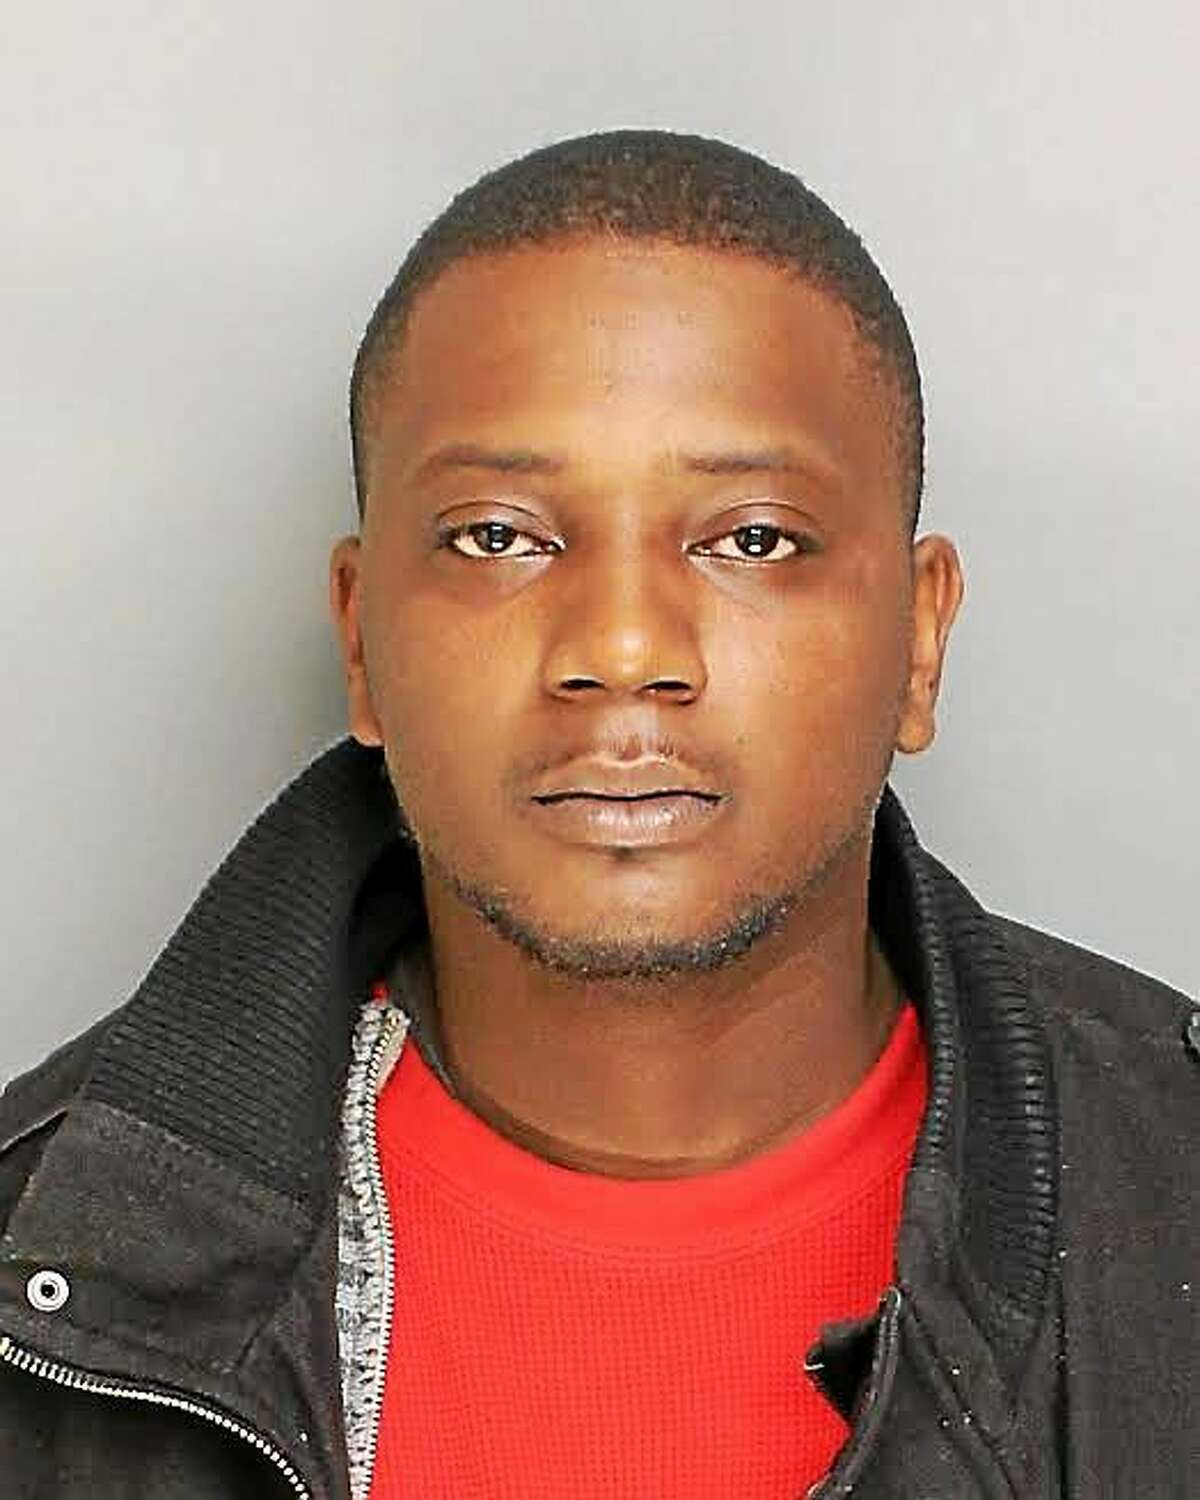 Gregory Weathers Jr. Photo courtesy of the Bridgeport Police Department